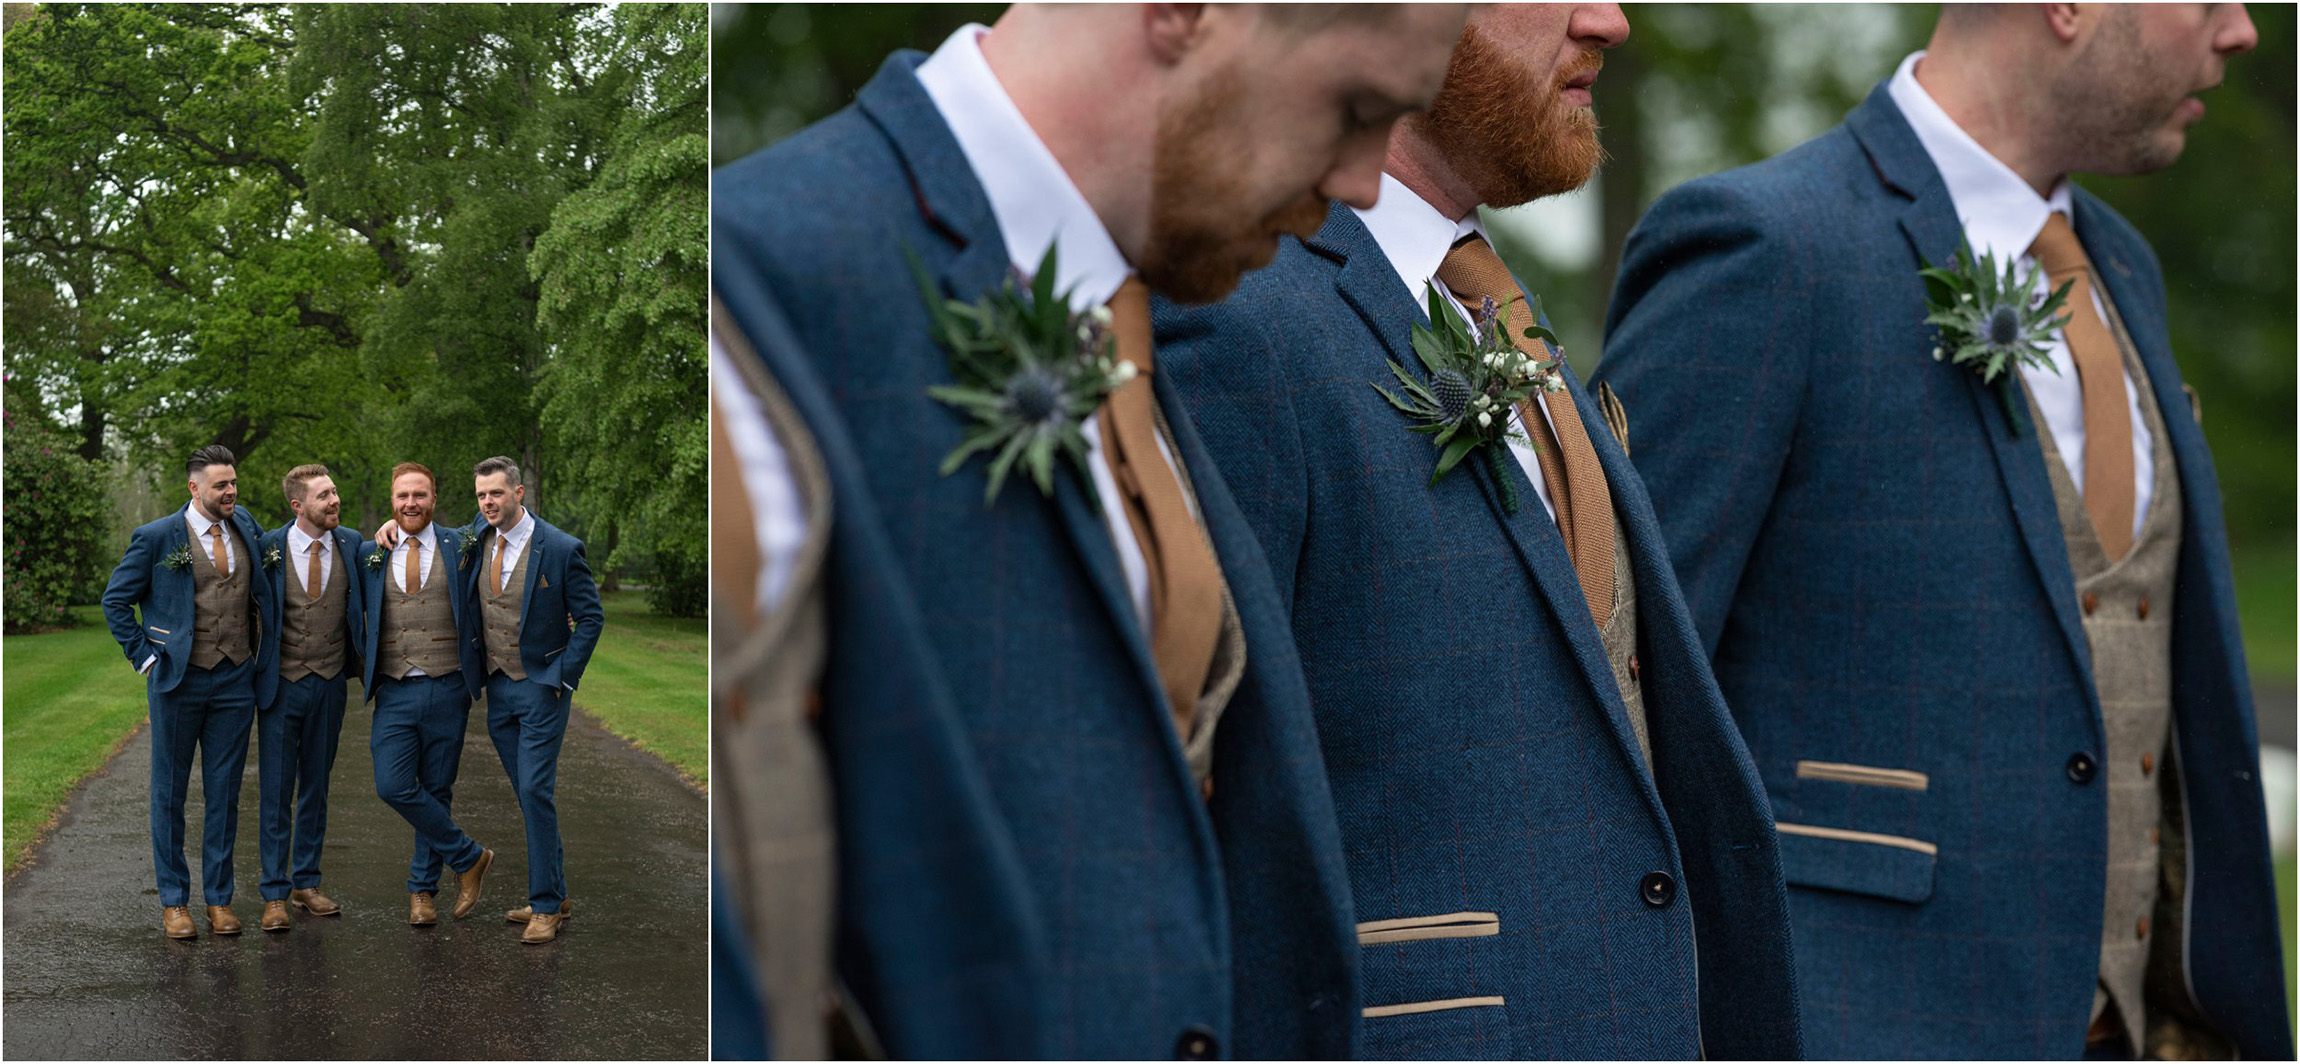 ©FianderFoto_Scotland Wedding Photographer_Errol Park Estate_Janine_Karl_050.jpg